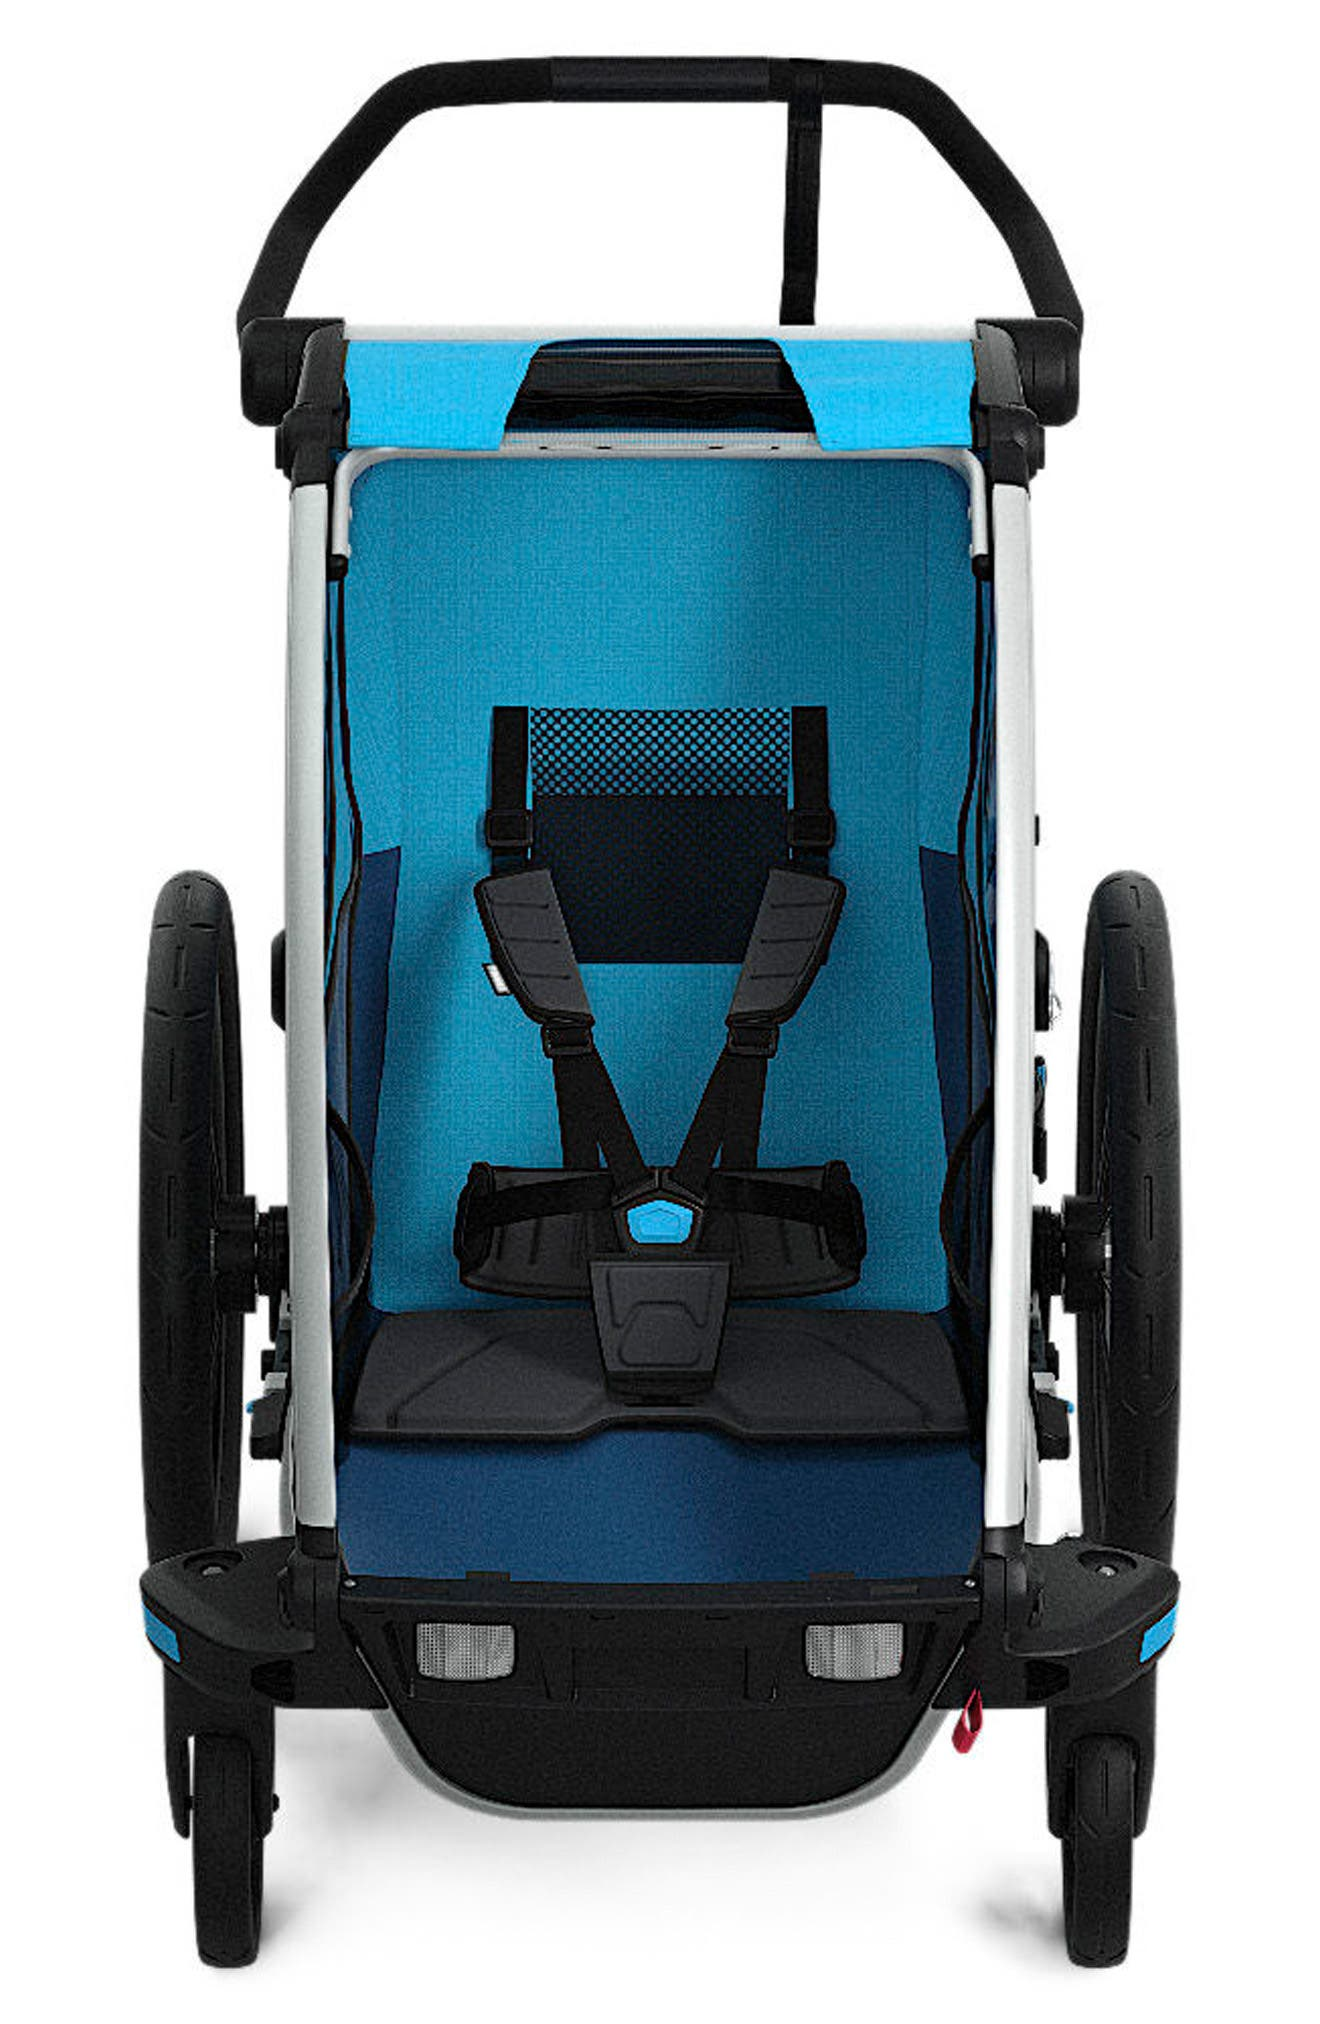 Chariot Cross 1 Multisport Cycle Trailer/Stroller,                         Main,                         color, THULE BLUE